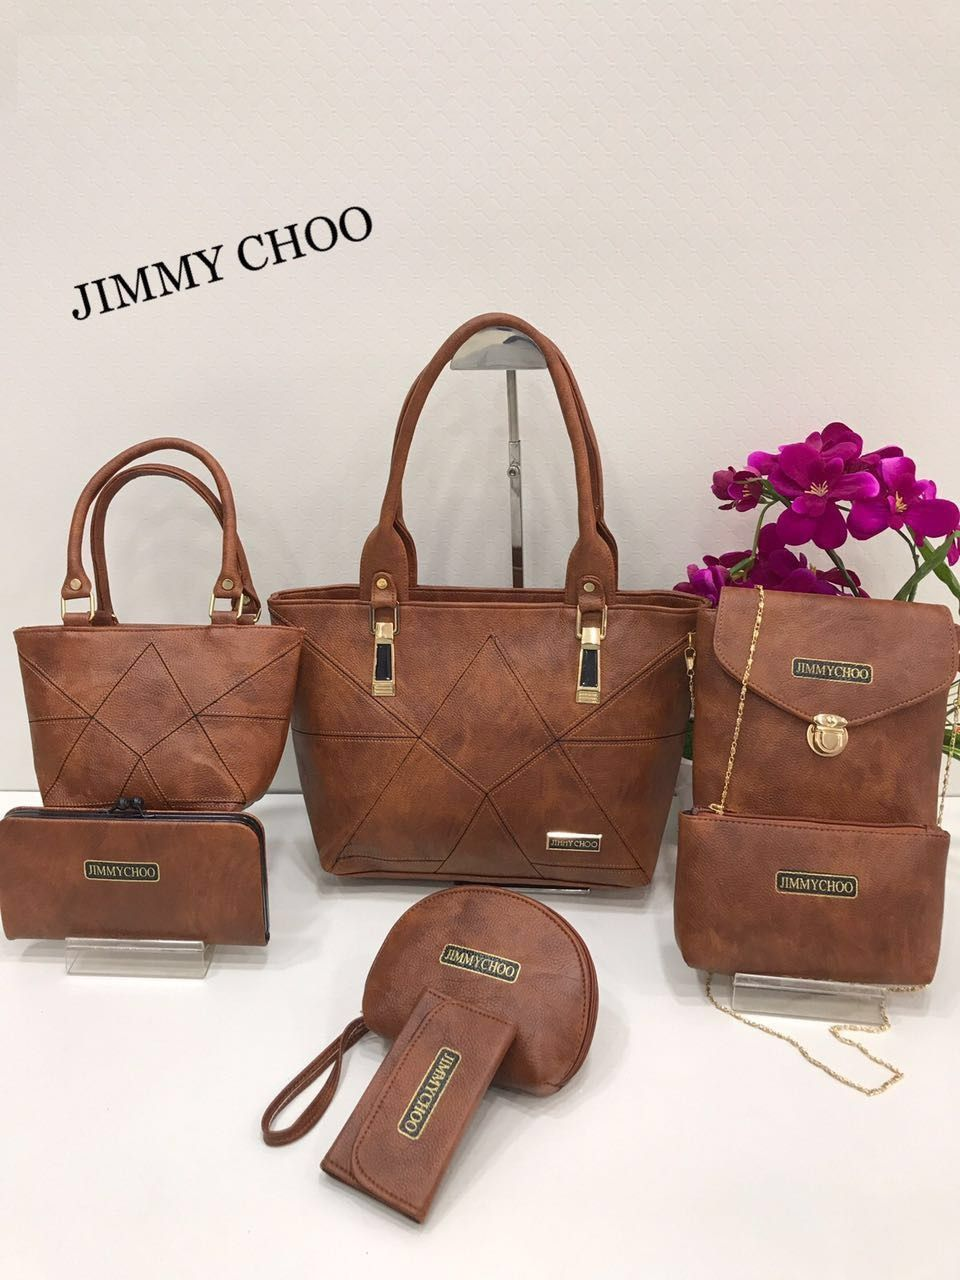 eb86afb232 JIMMY CHOO Ladies Purse Combo AVAILABLE COLORS Jimmy Choo Combo Set of 7  Size 14x10(